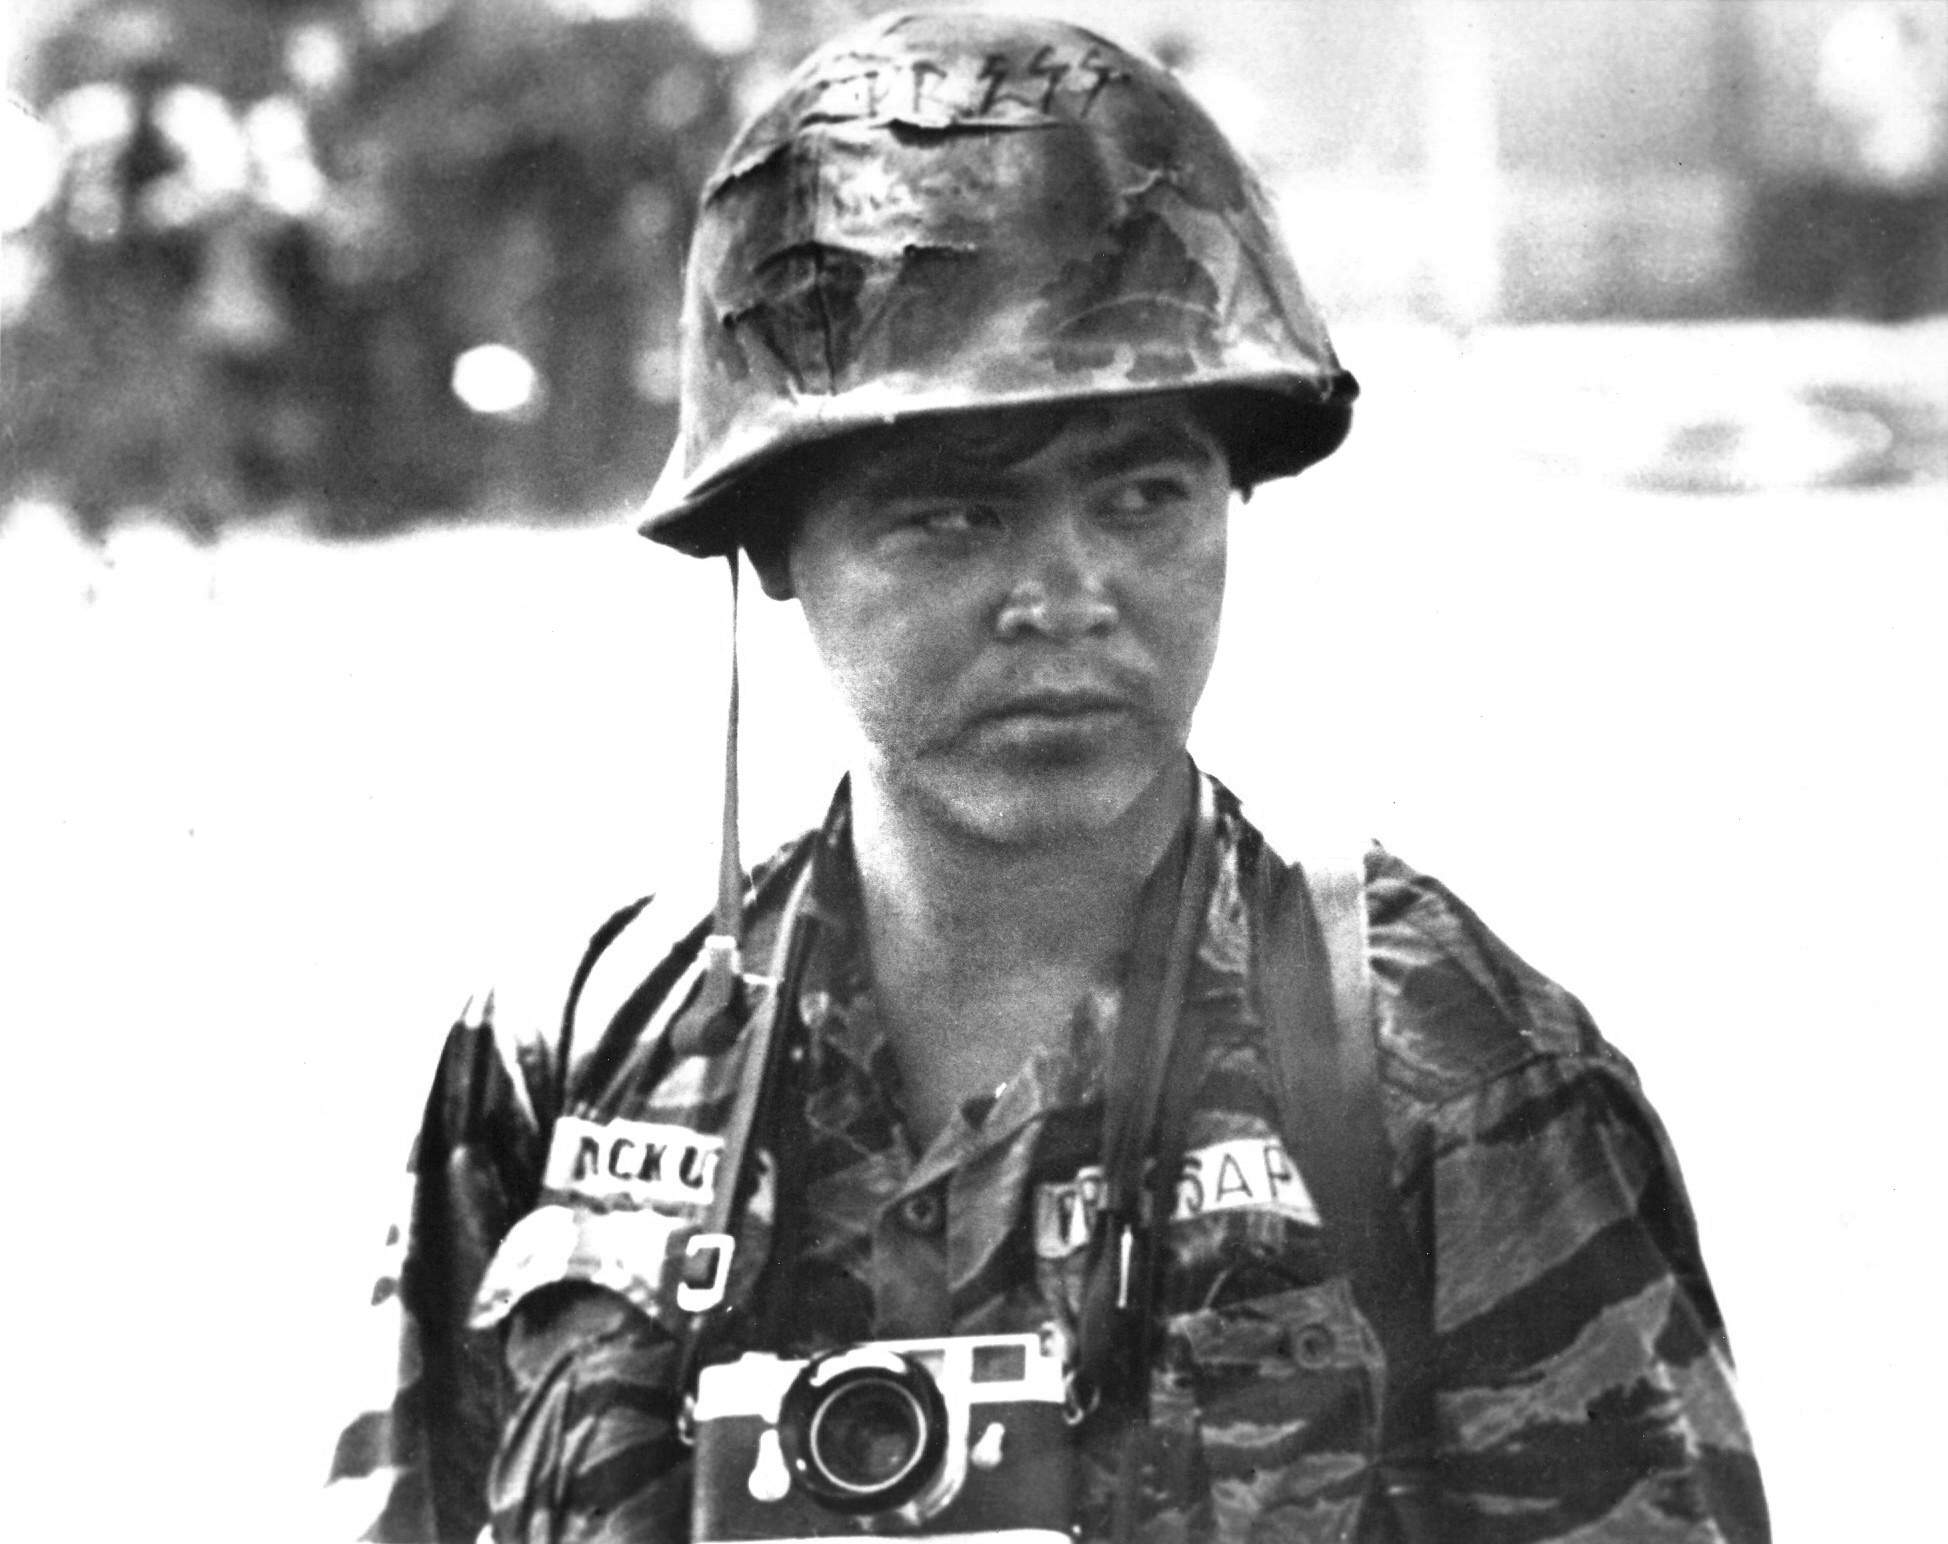 This undated file photo shows Associated Press photographer Nick Ut in Vietnam. Ut will be retiring from the AP in March 2017 after 51 years of taking photographs from the front lines of the Vietnam War to the red carpets of Hollywood. THE ASSOCIATED PRESS